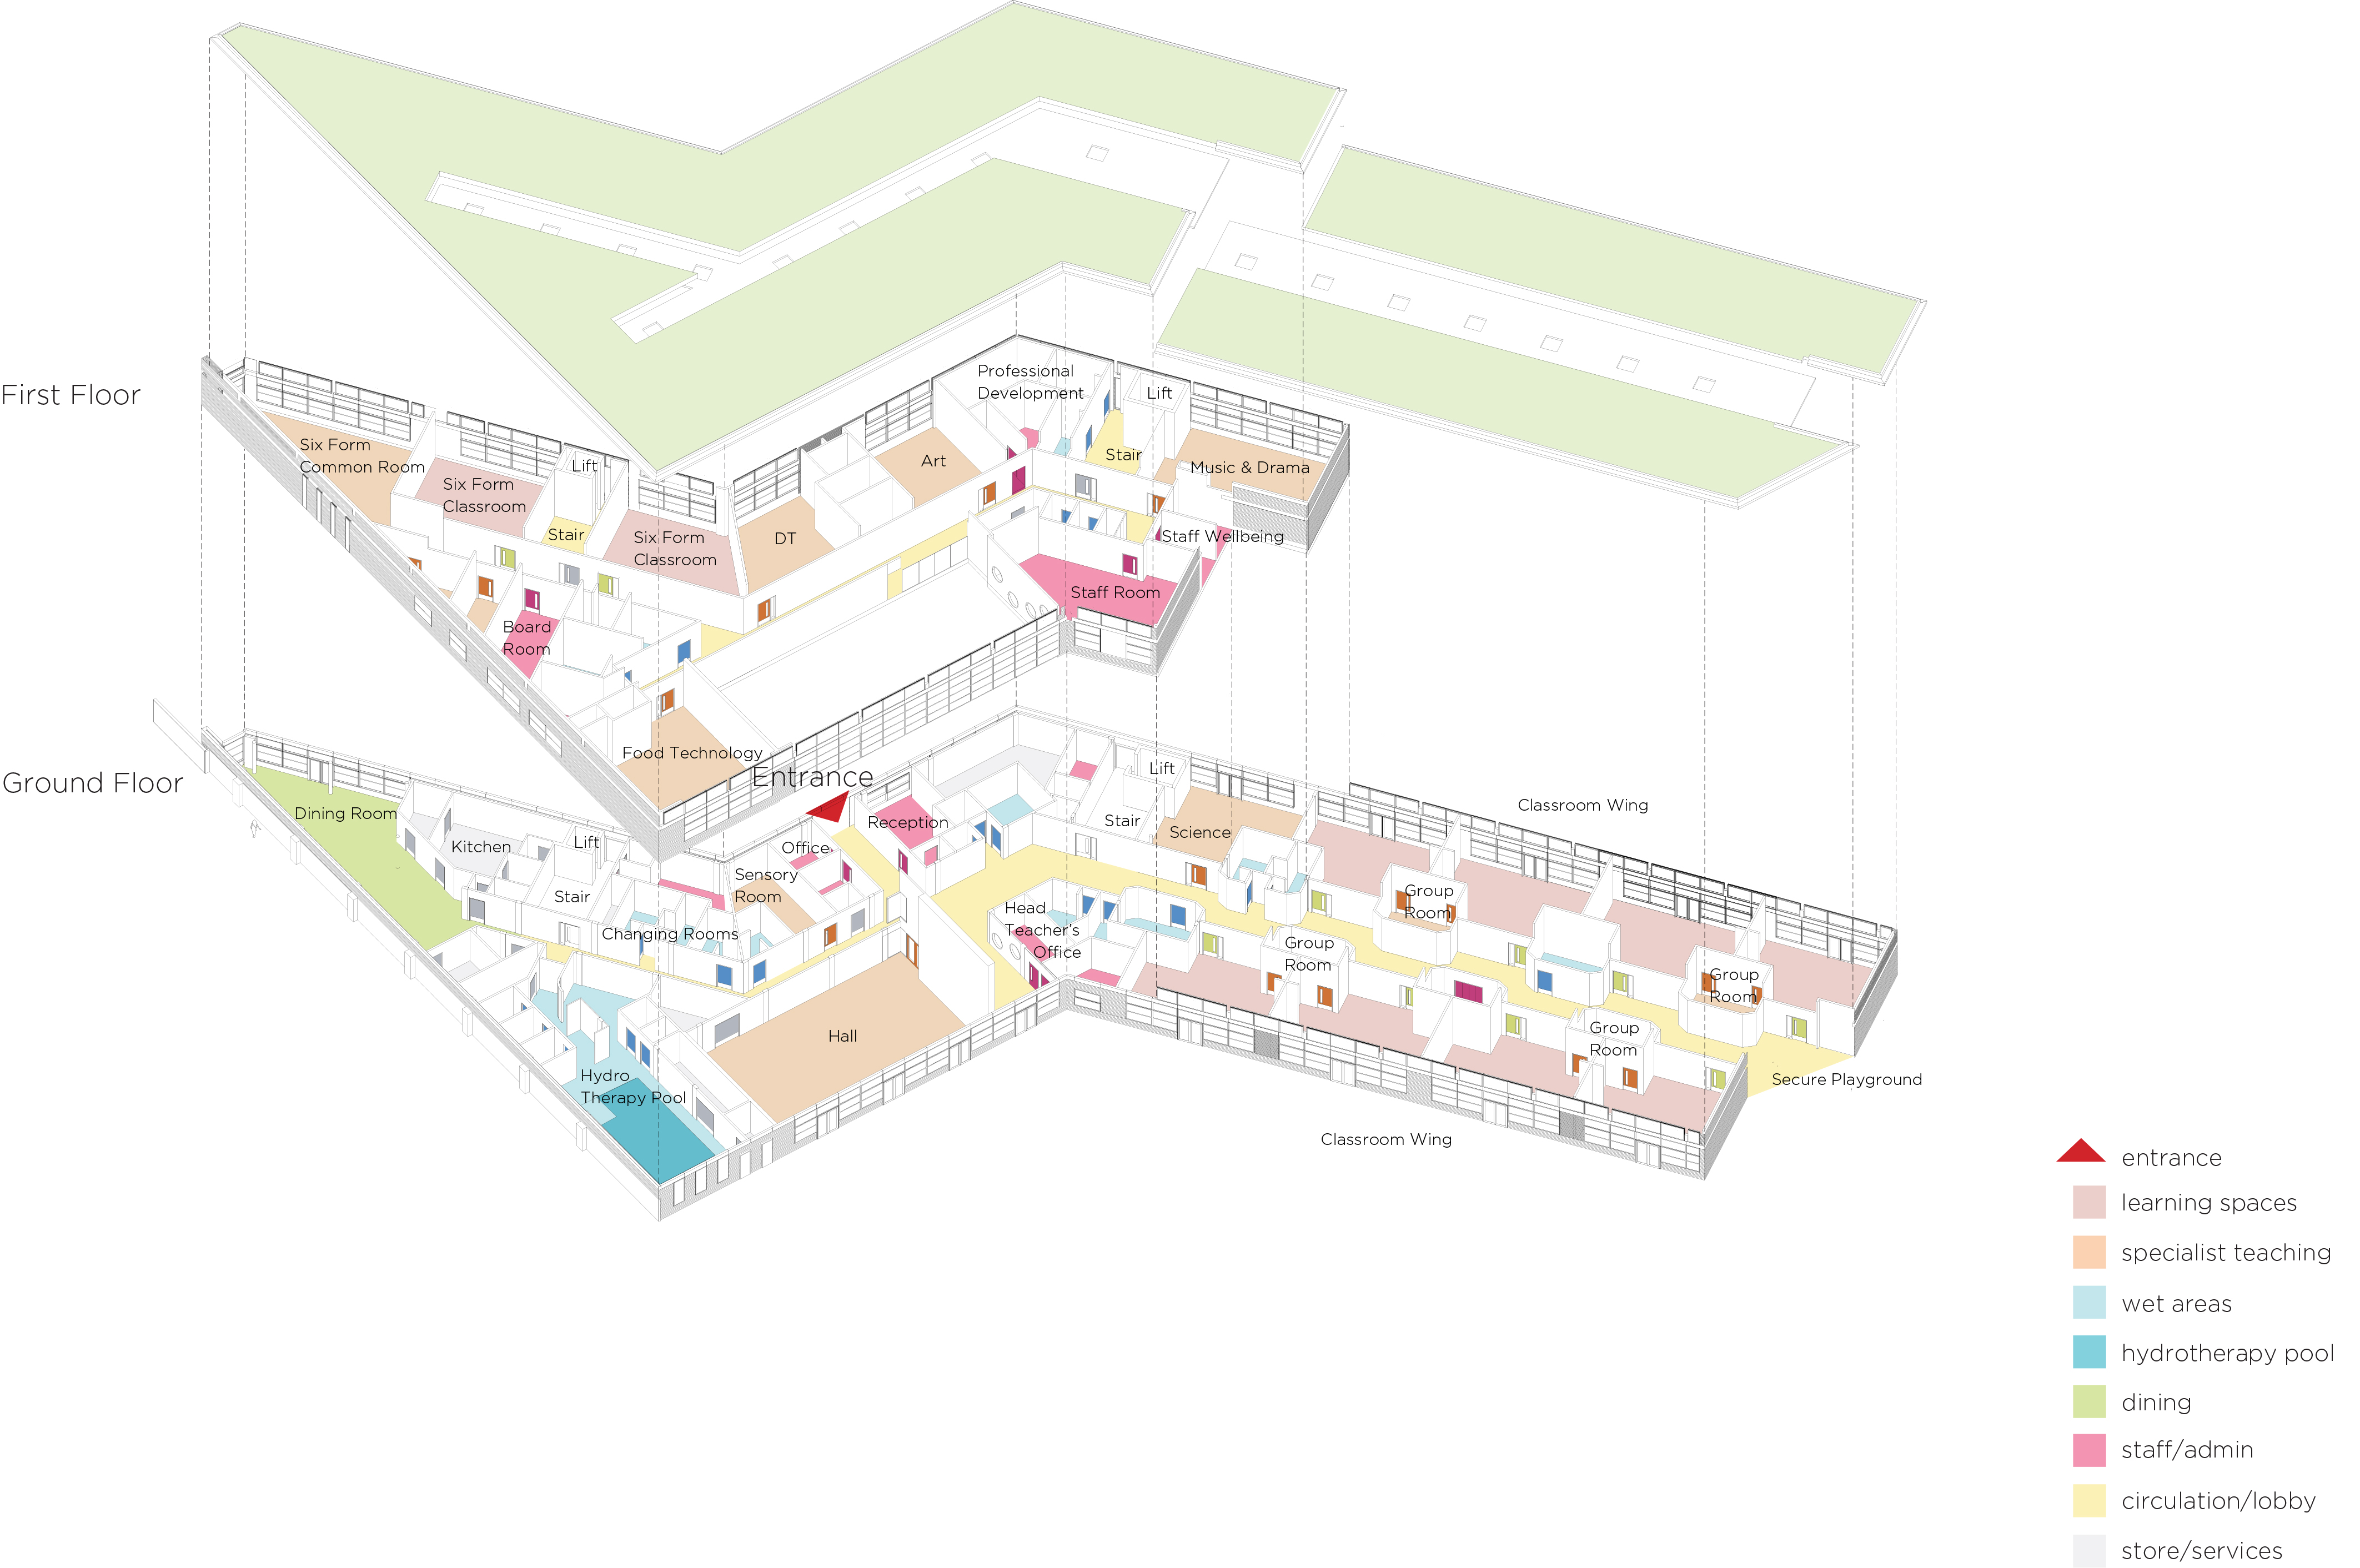 expanded axonometric - Michael Tippett School by Marks Barfield Architects